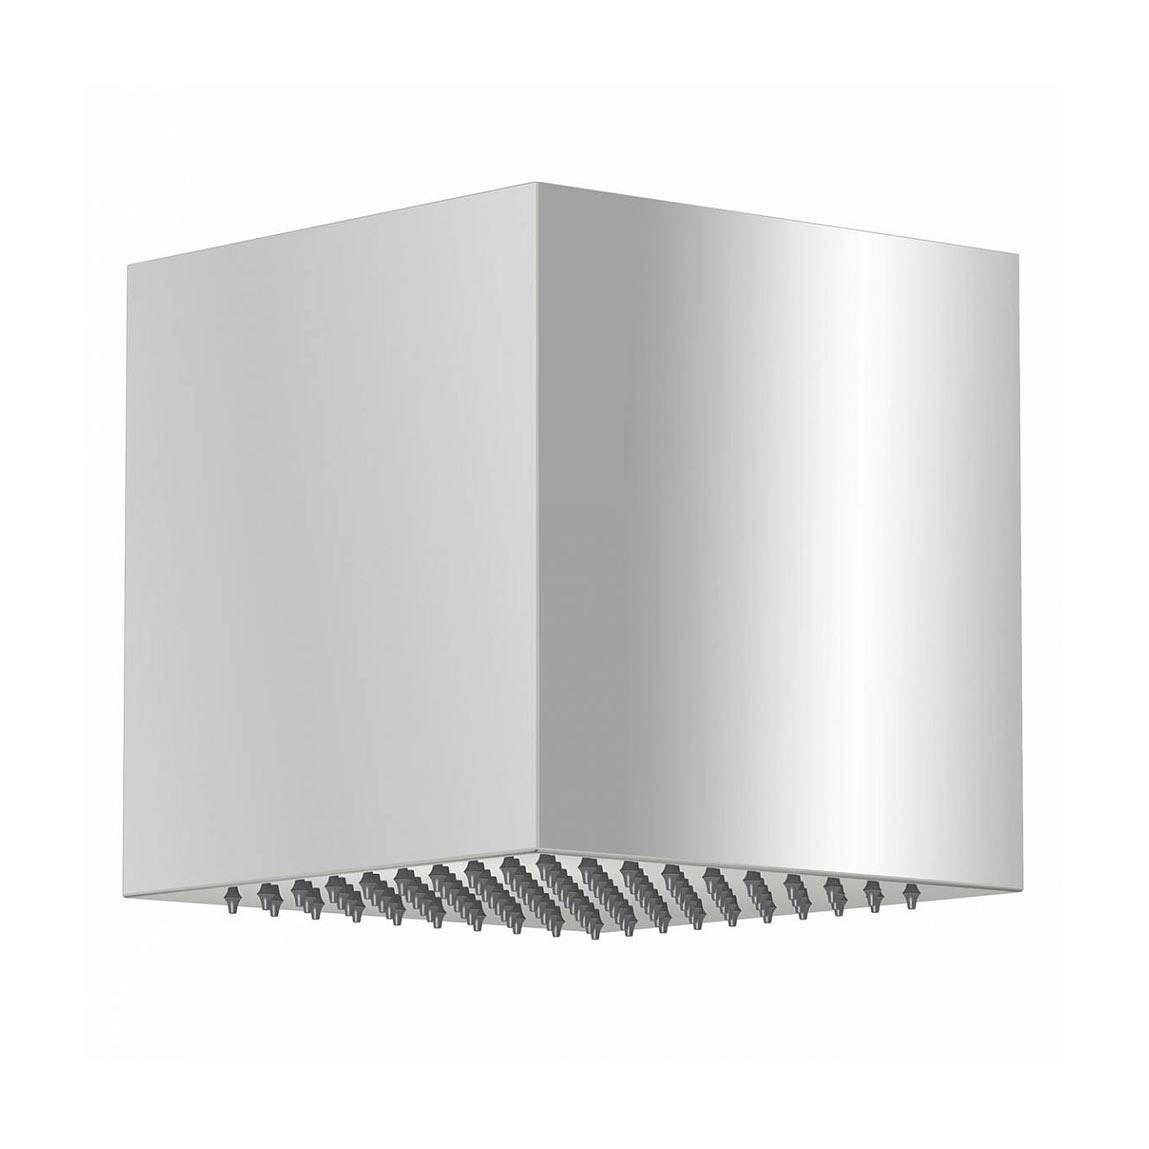 Image of Arcus Ceiling 200mm Shower Head Large